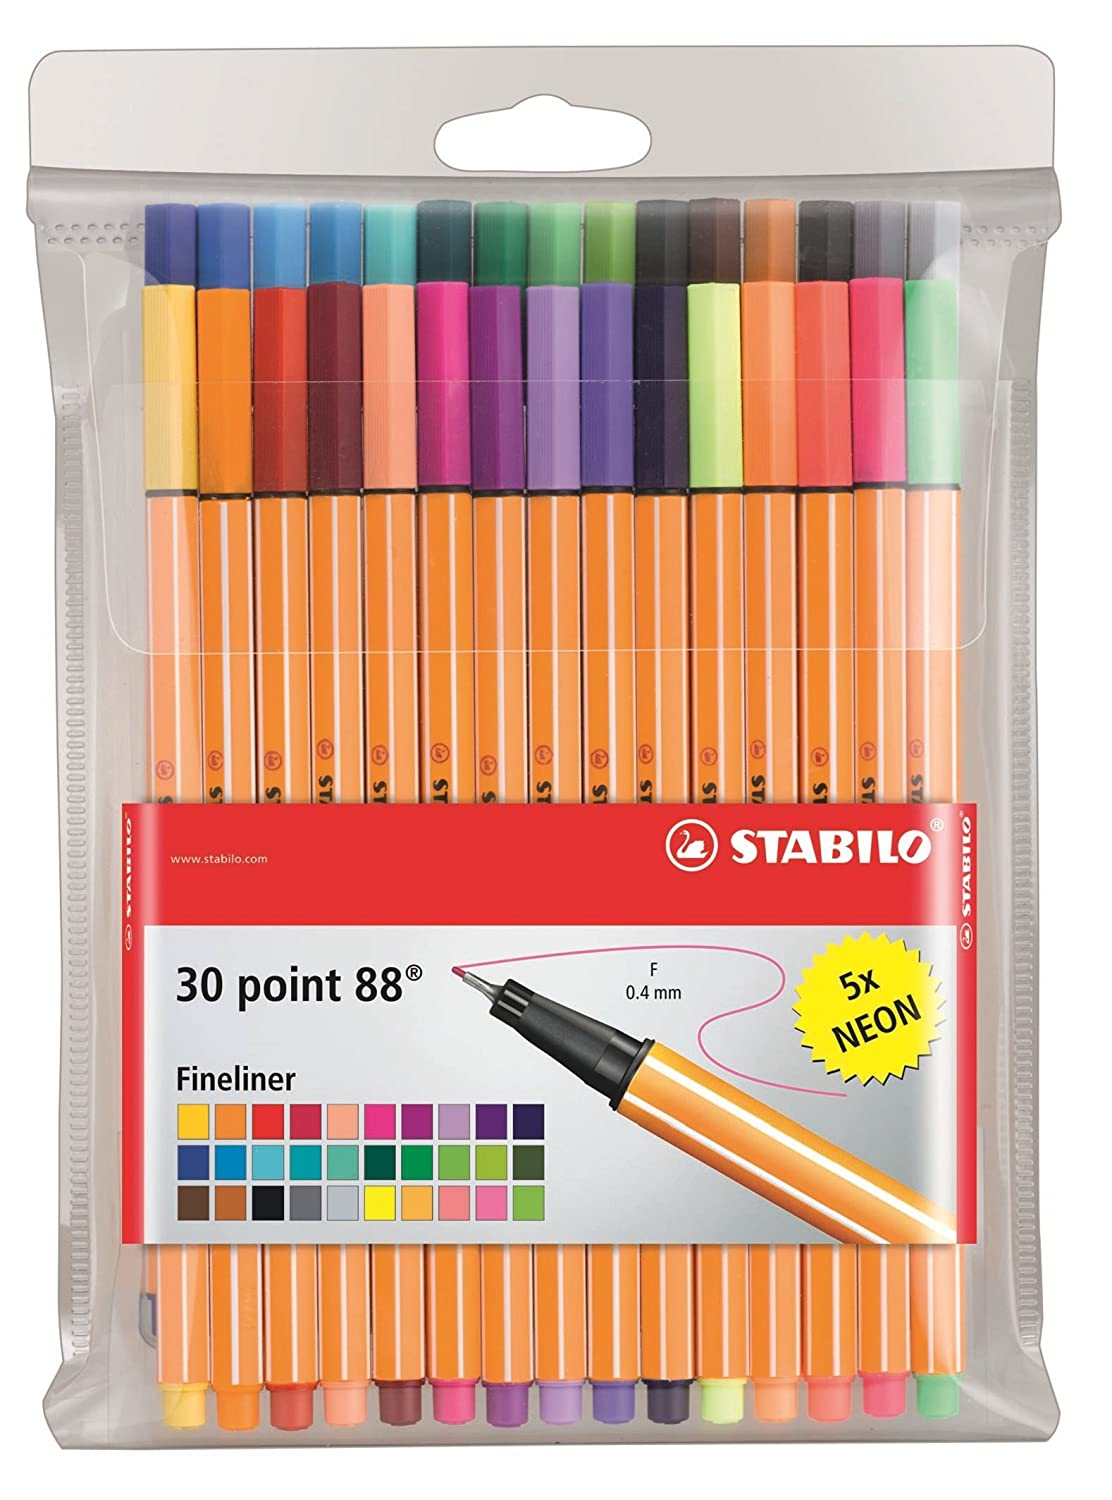 Amazon.com: Stabilo Point 88 Fineliner Pens, 0.4 mm - 30-Color Wallet Set:  Office Products